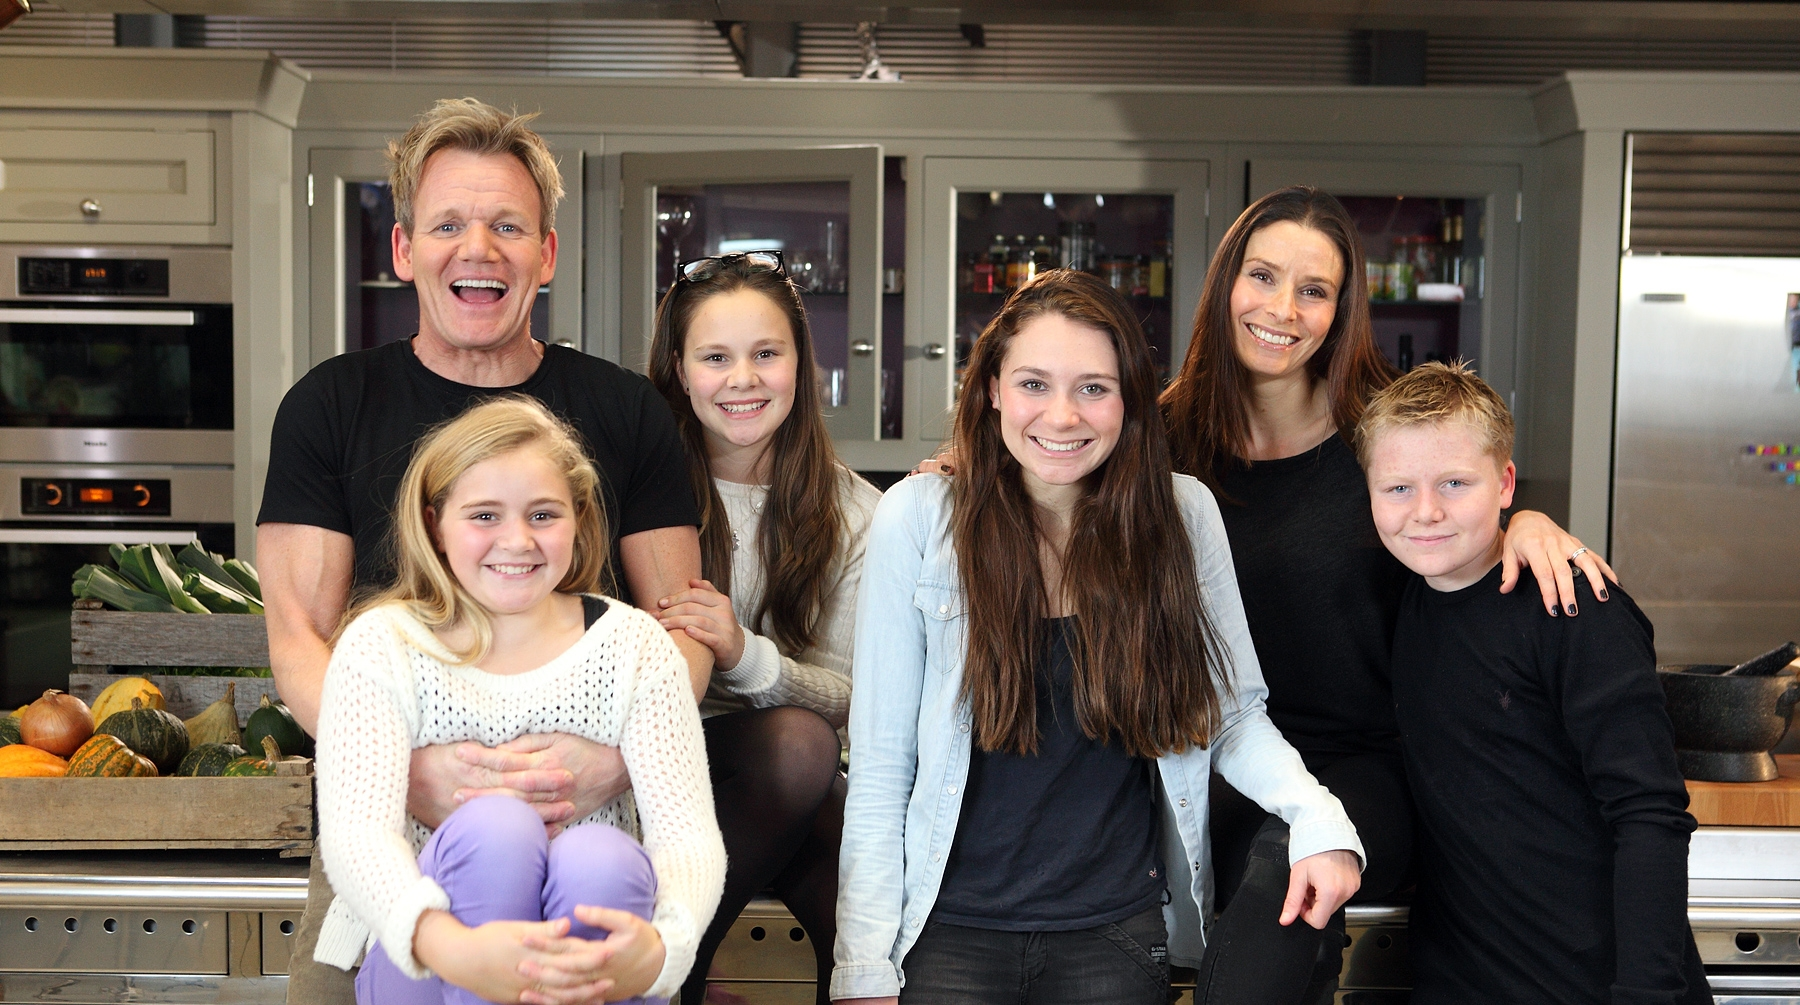 gordon ramsay and his family